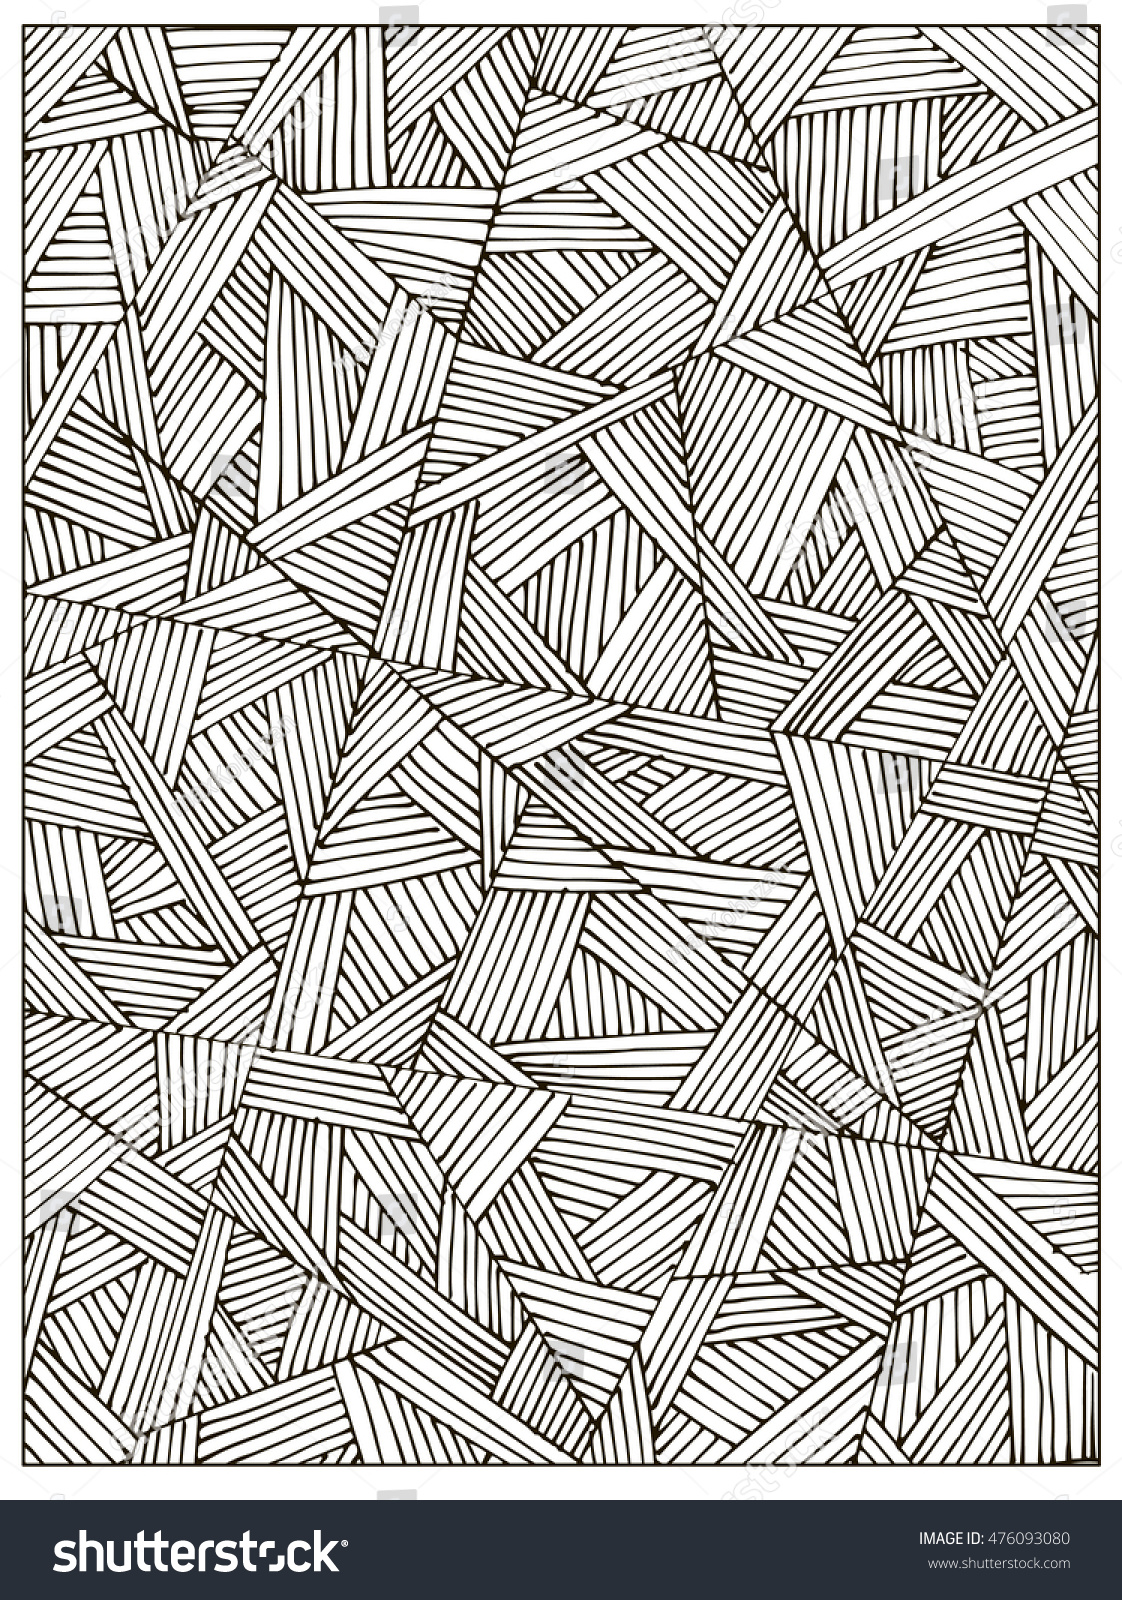 difficult uncolored coloring book page stock vector